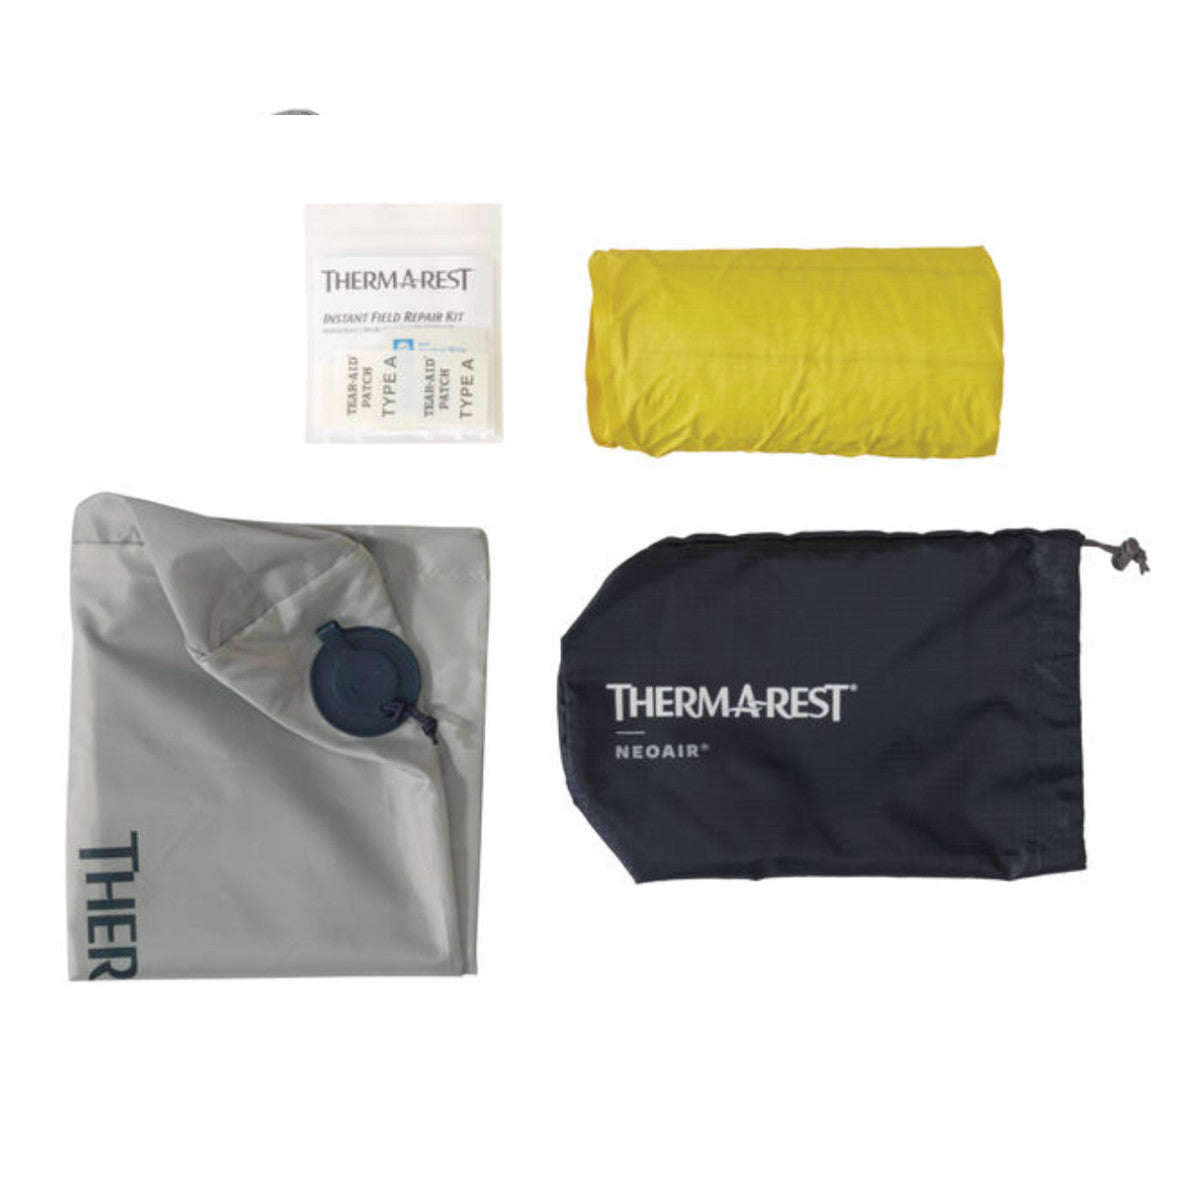 Thermarest NeoAir XLite individual items from pack